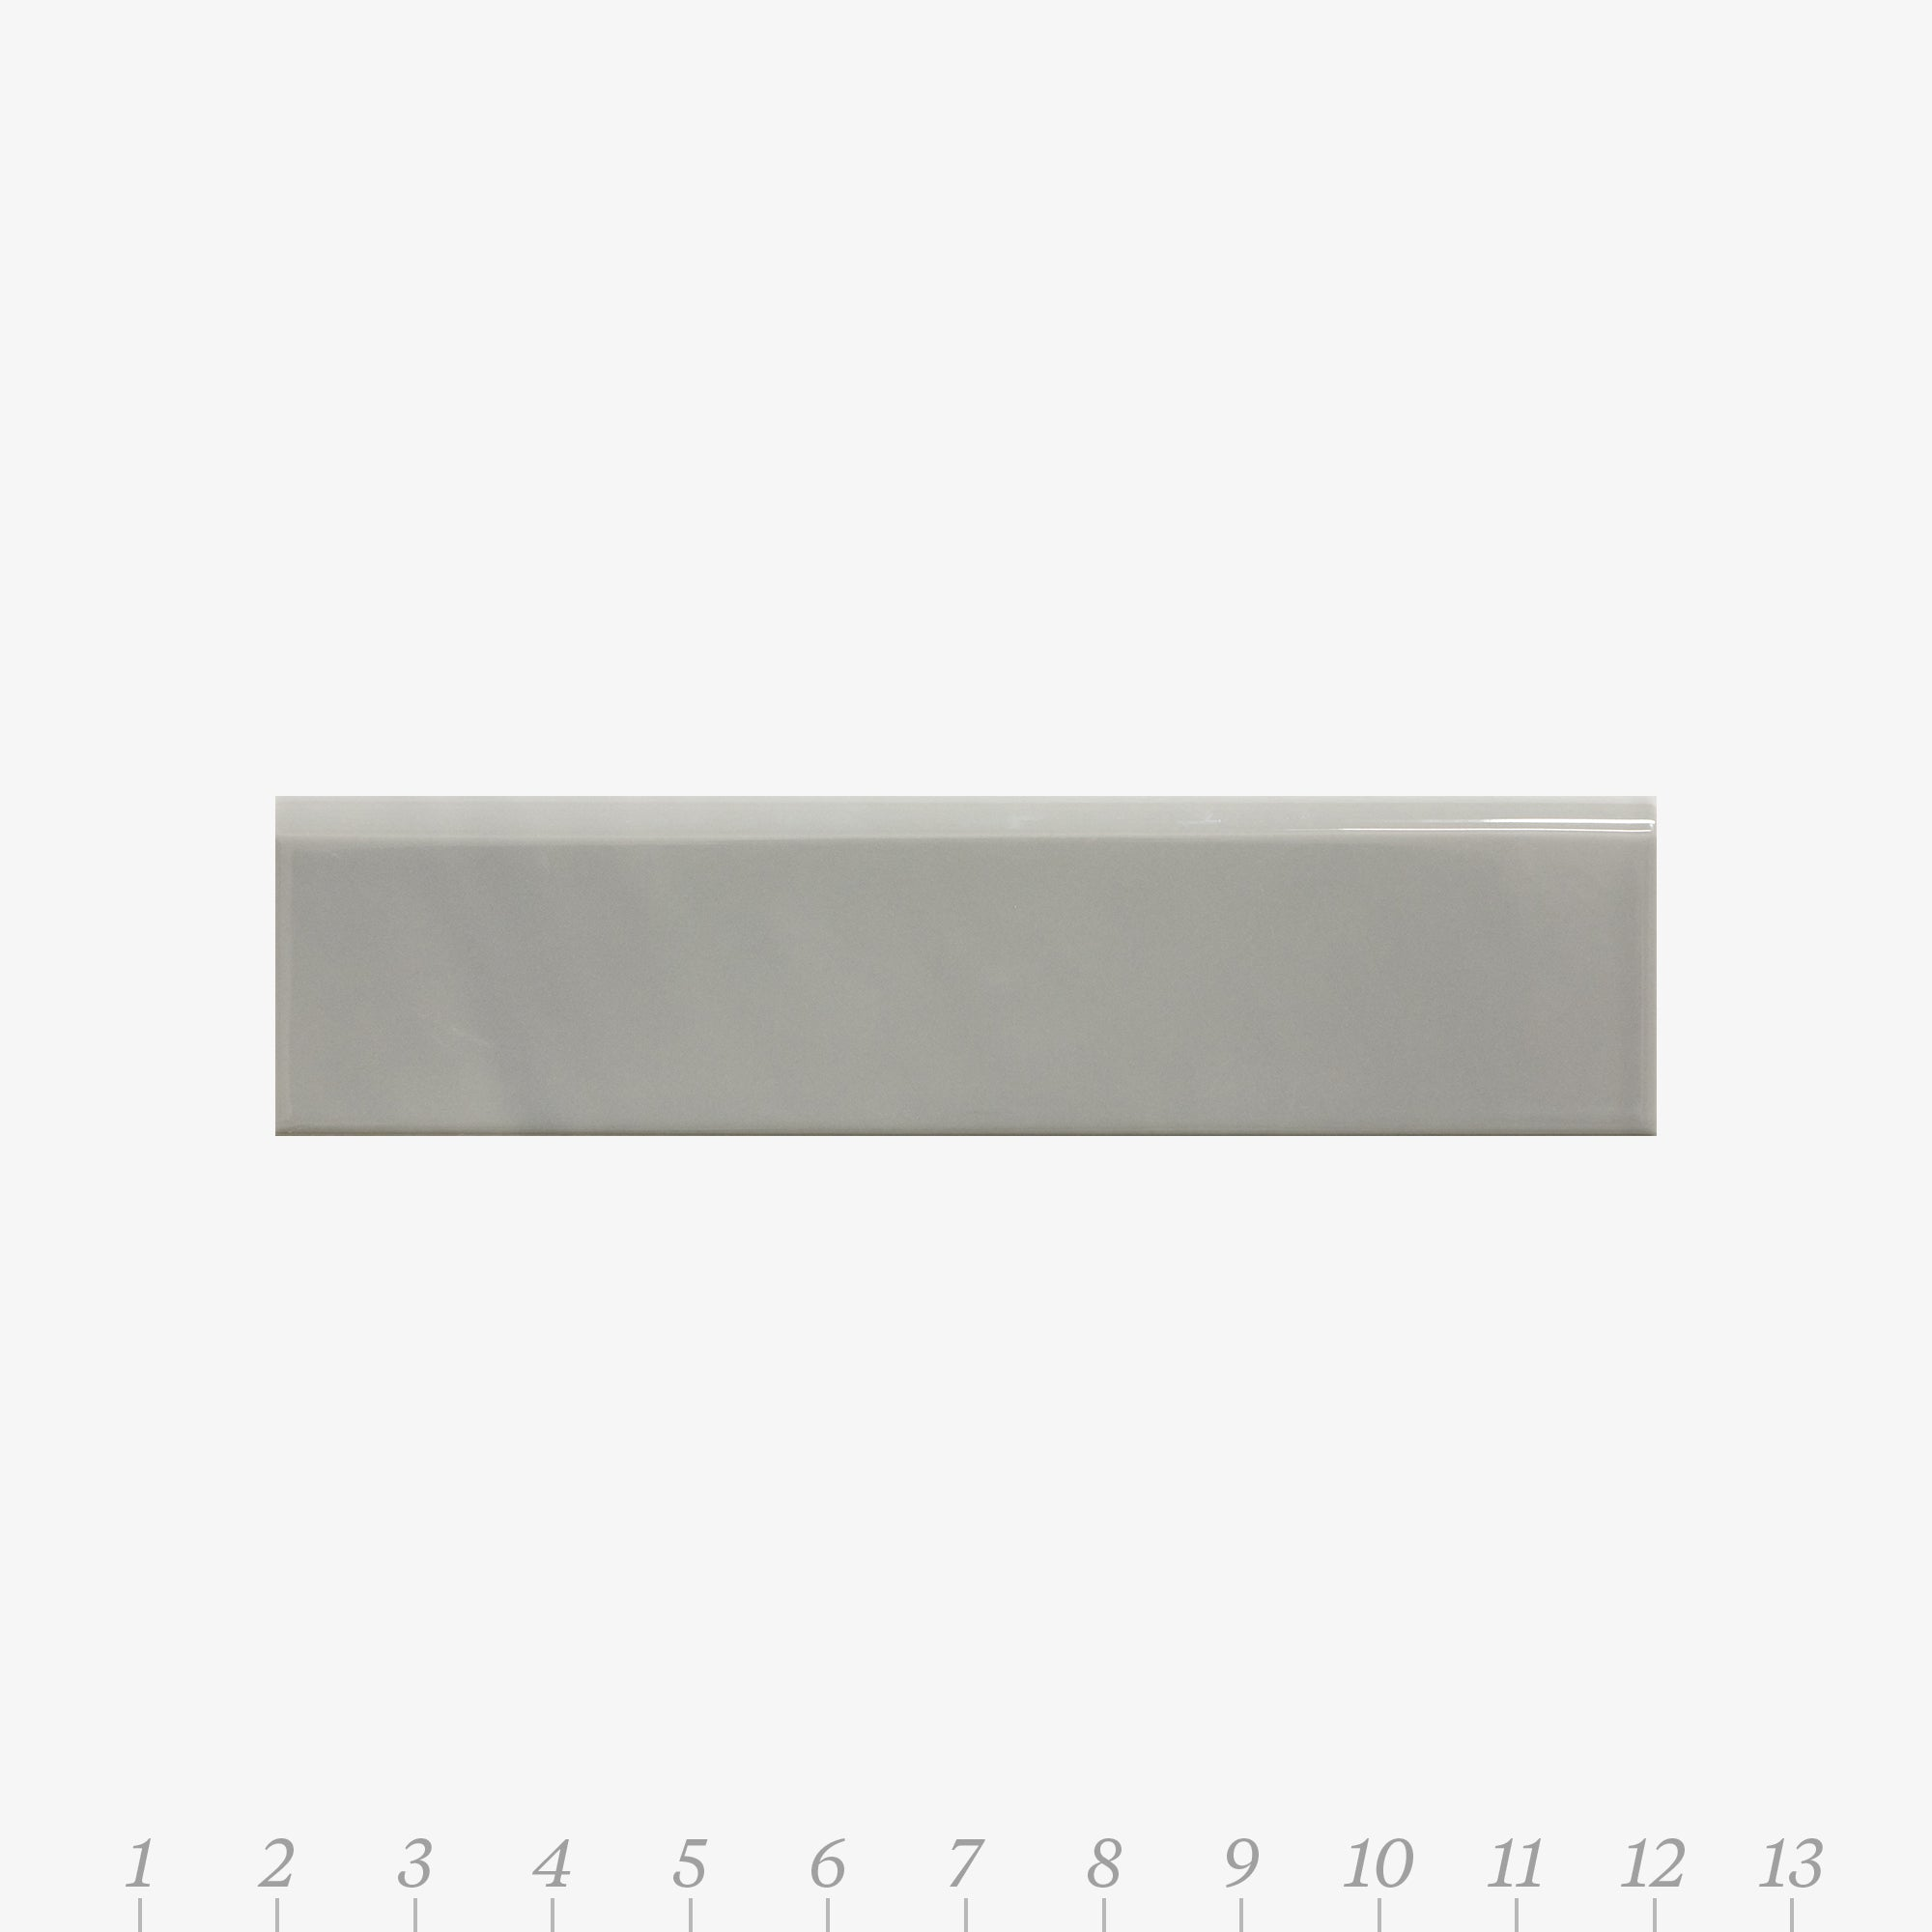 A Train Ash Bullnose product photo